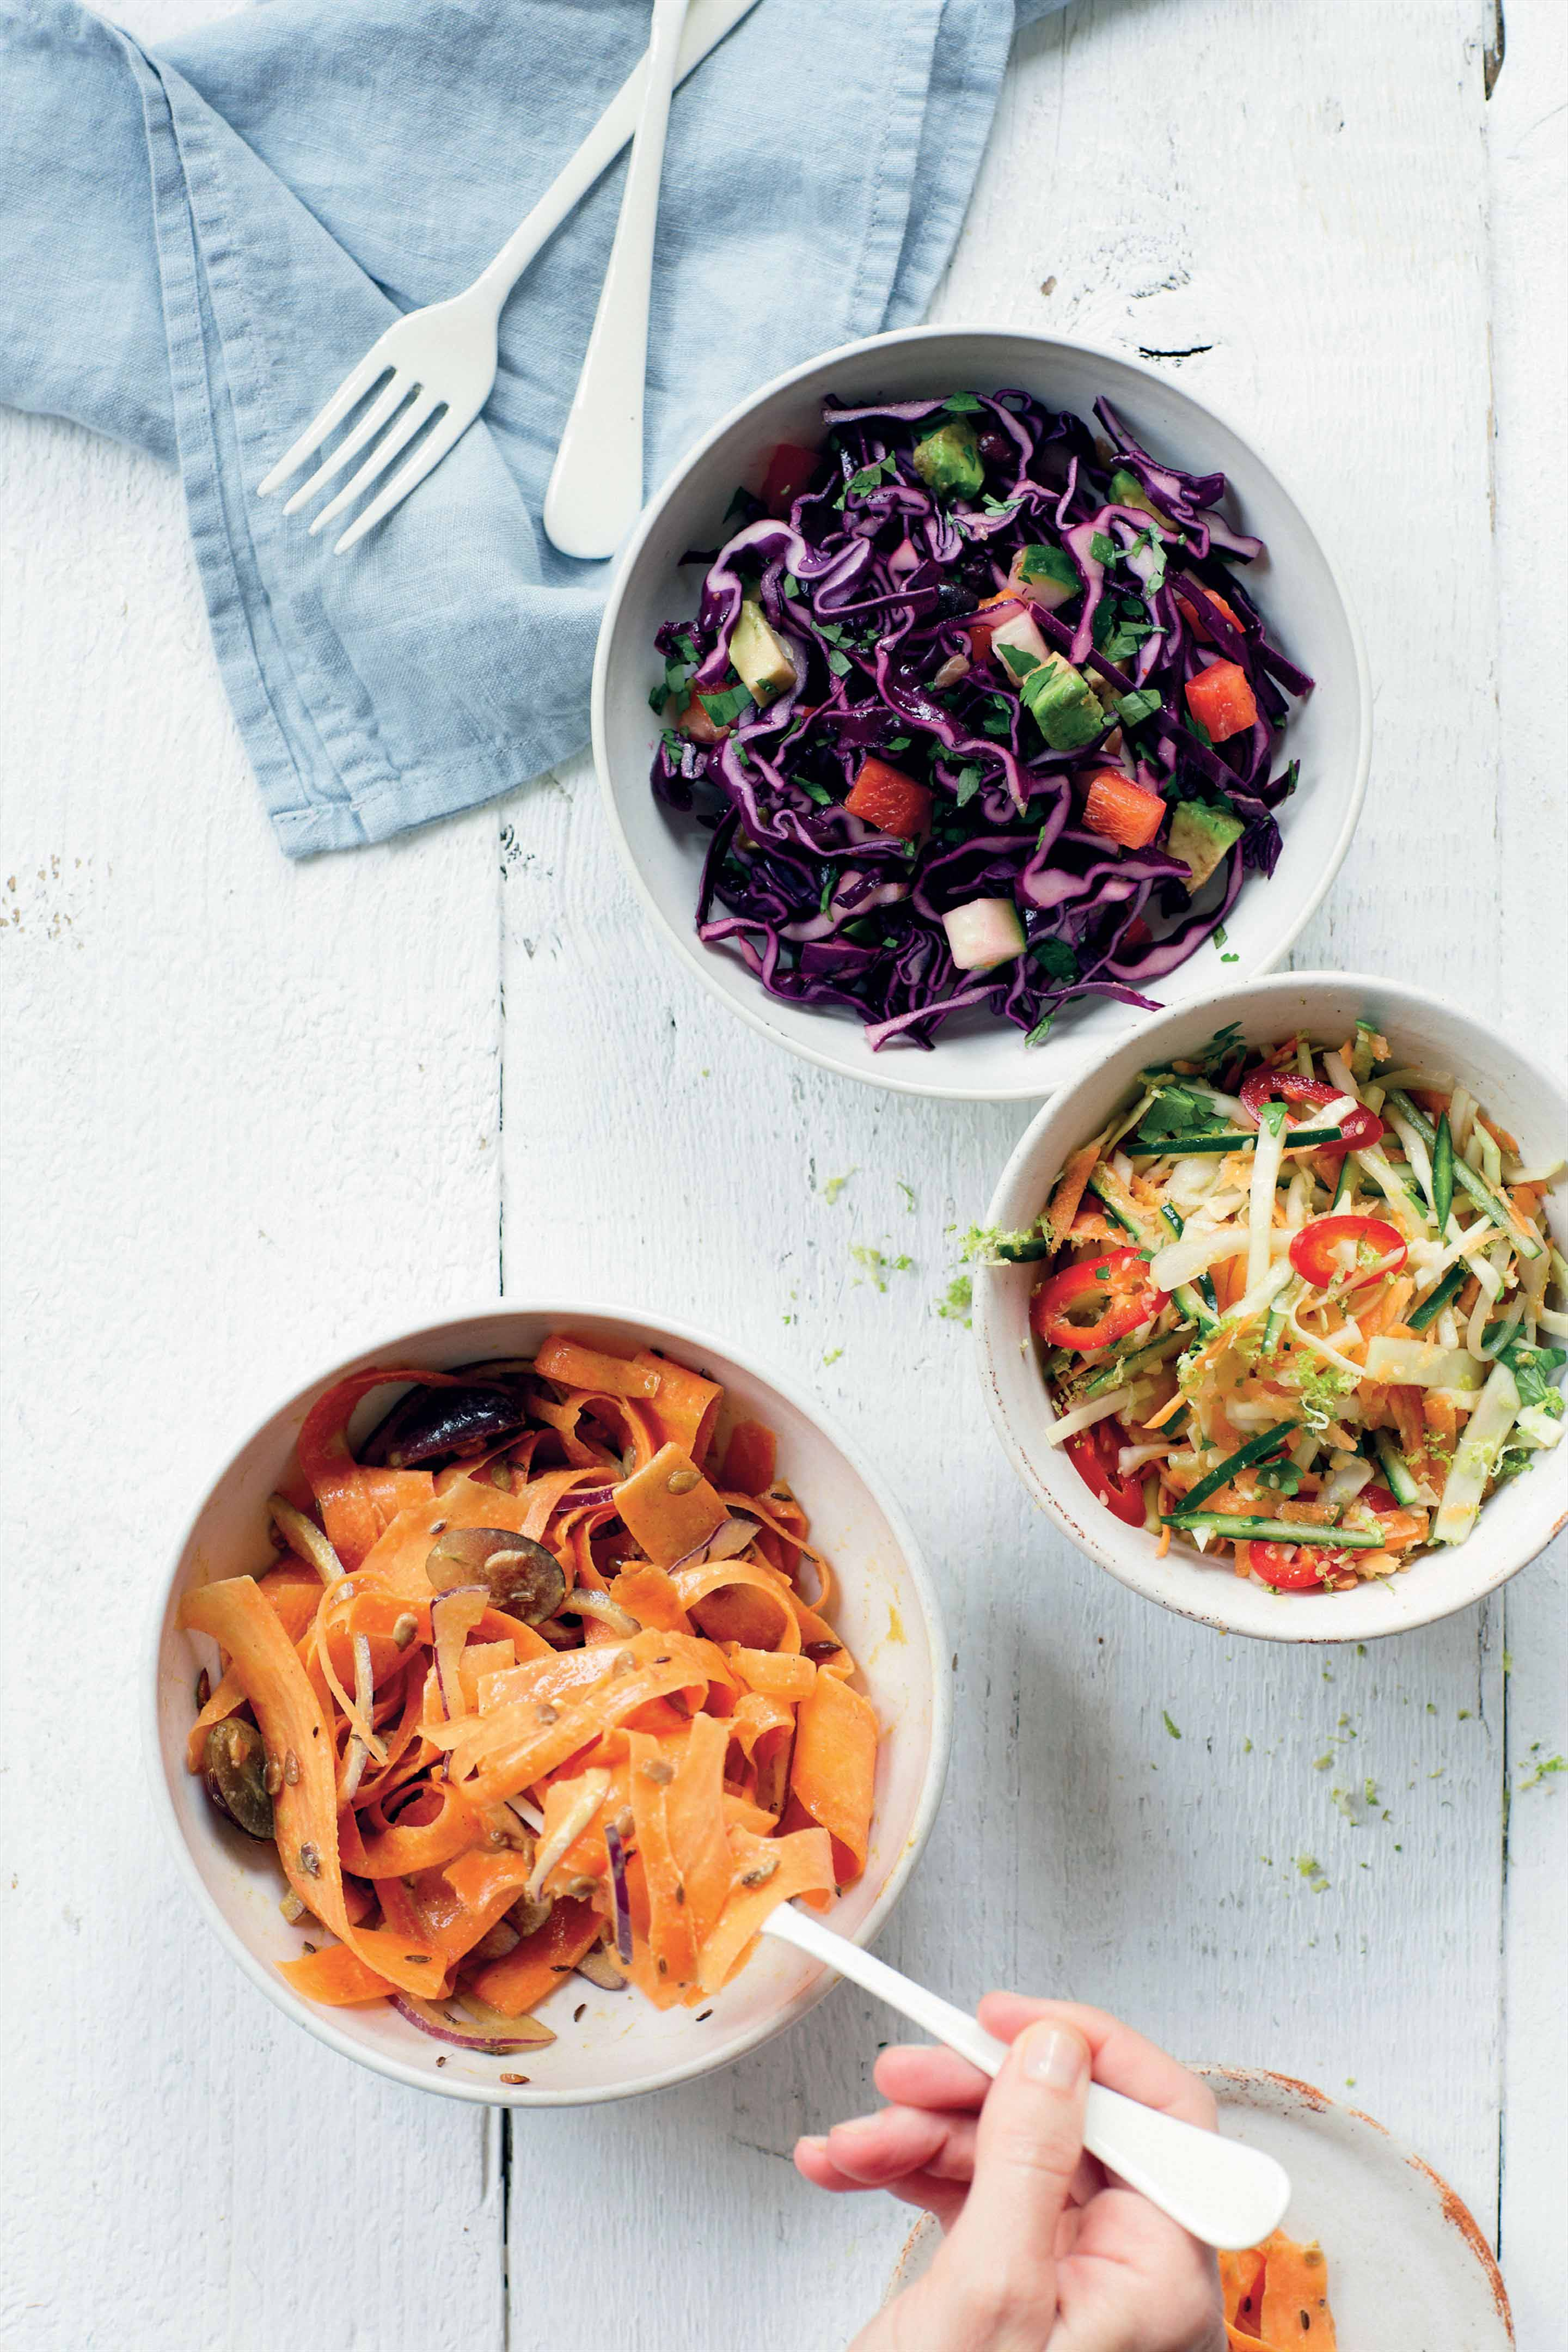 Carrot coleslaw salad with grapes